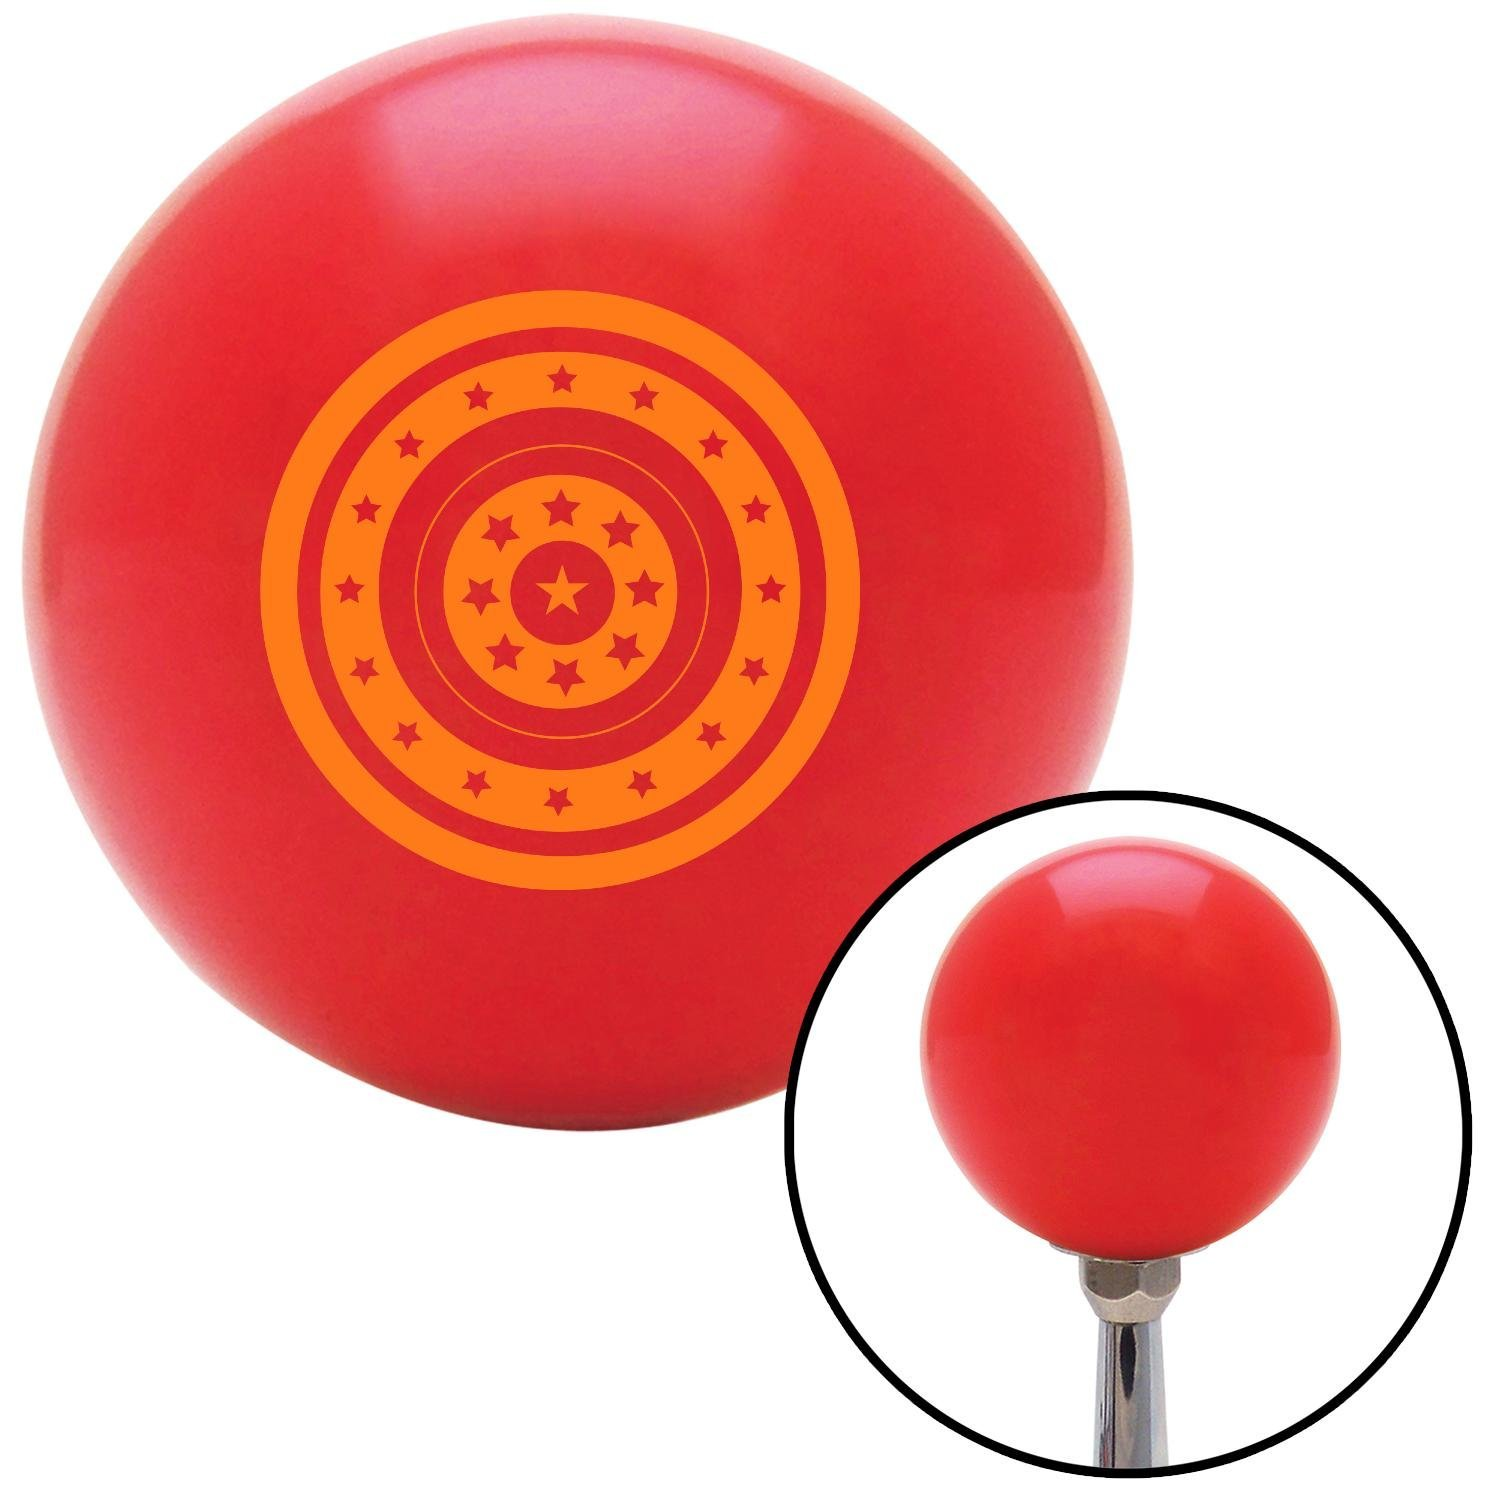 American Shifter 98238 Red Shift Knob with M16 x 1.5 Insert Orange Star Target